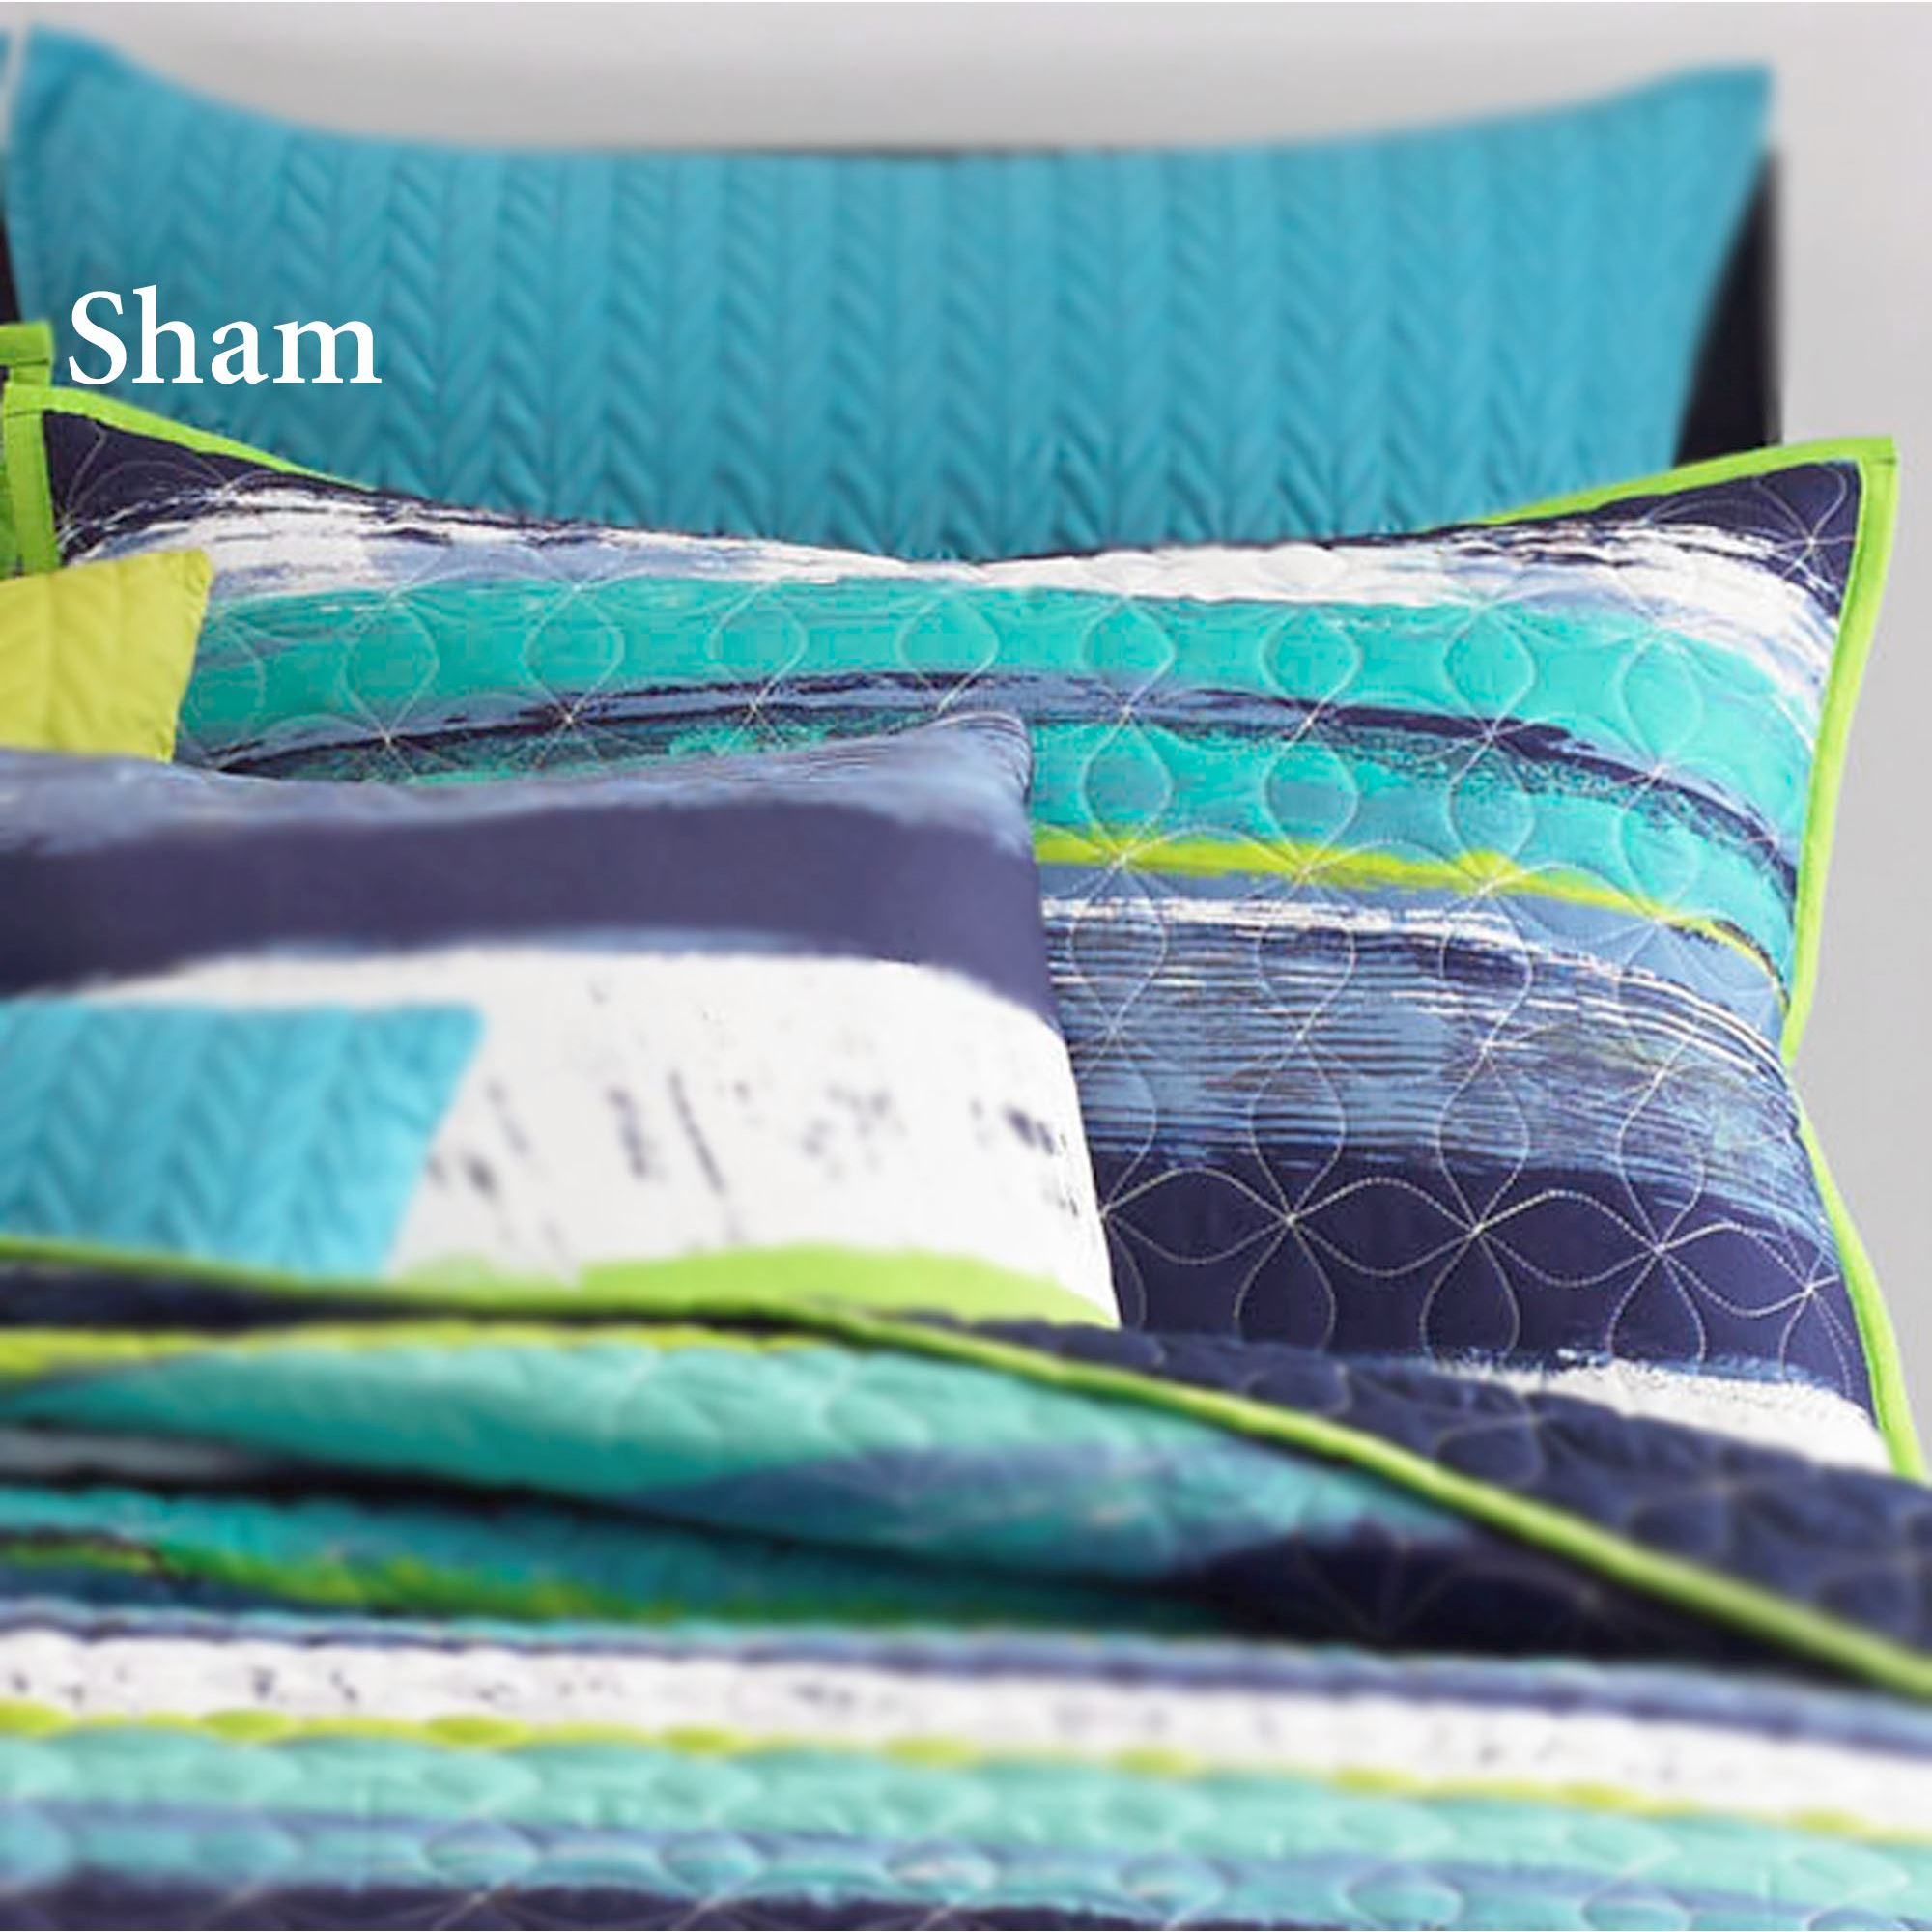 and walmart gray a ip com bed bedding set mainstays in comforter teal bag